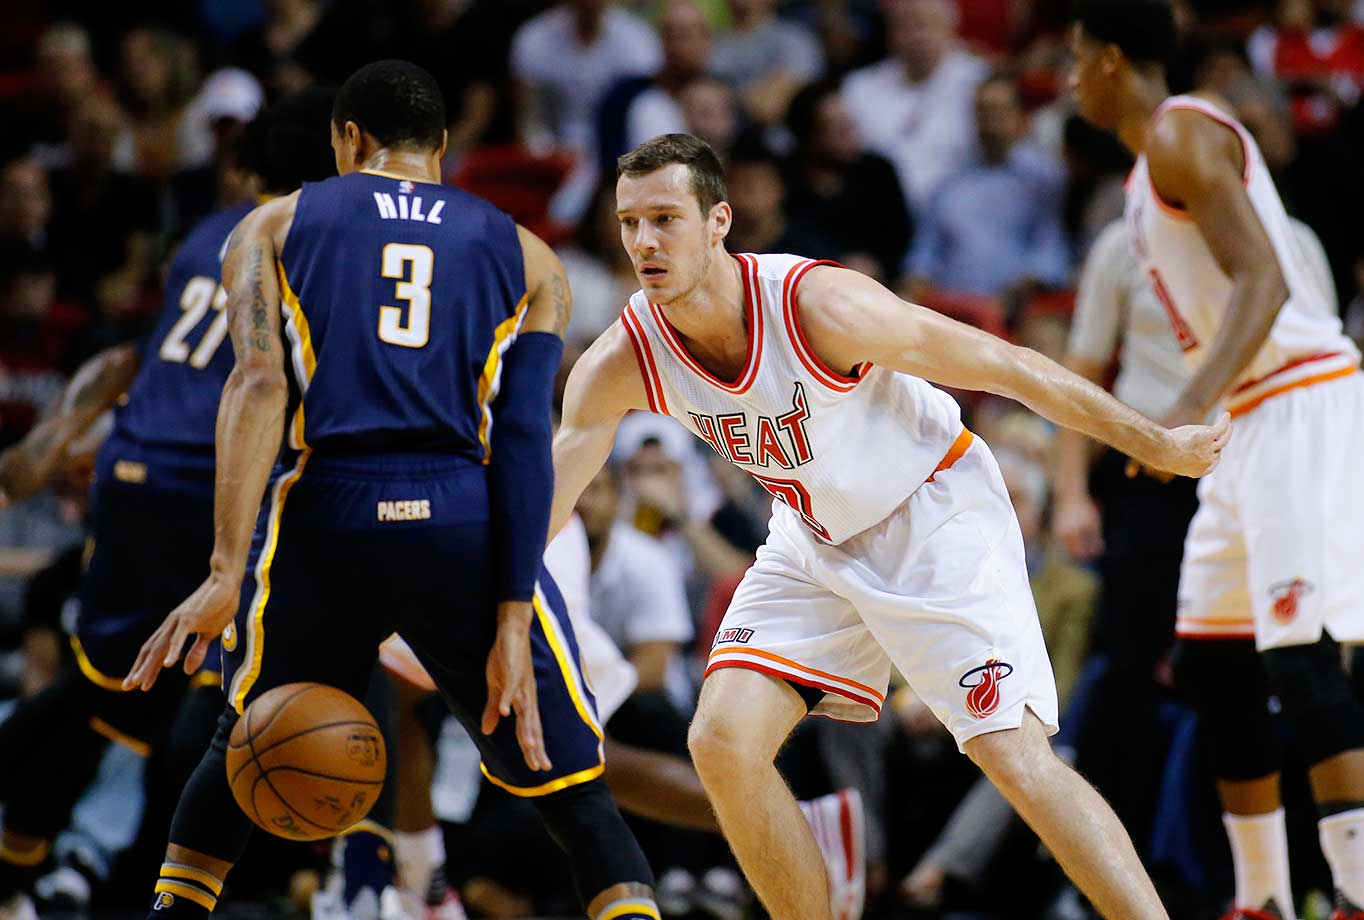 Indiana Pacers George Hill dribbles the ball behind this back while defended by Goran Dragic of Miami.